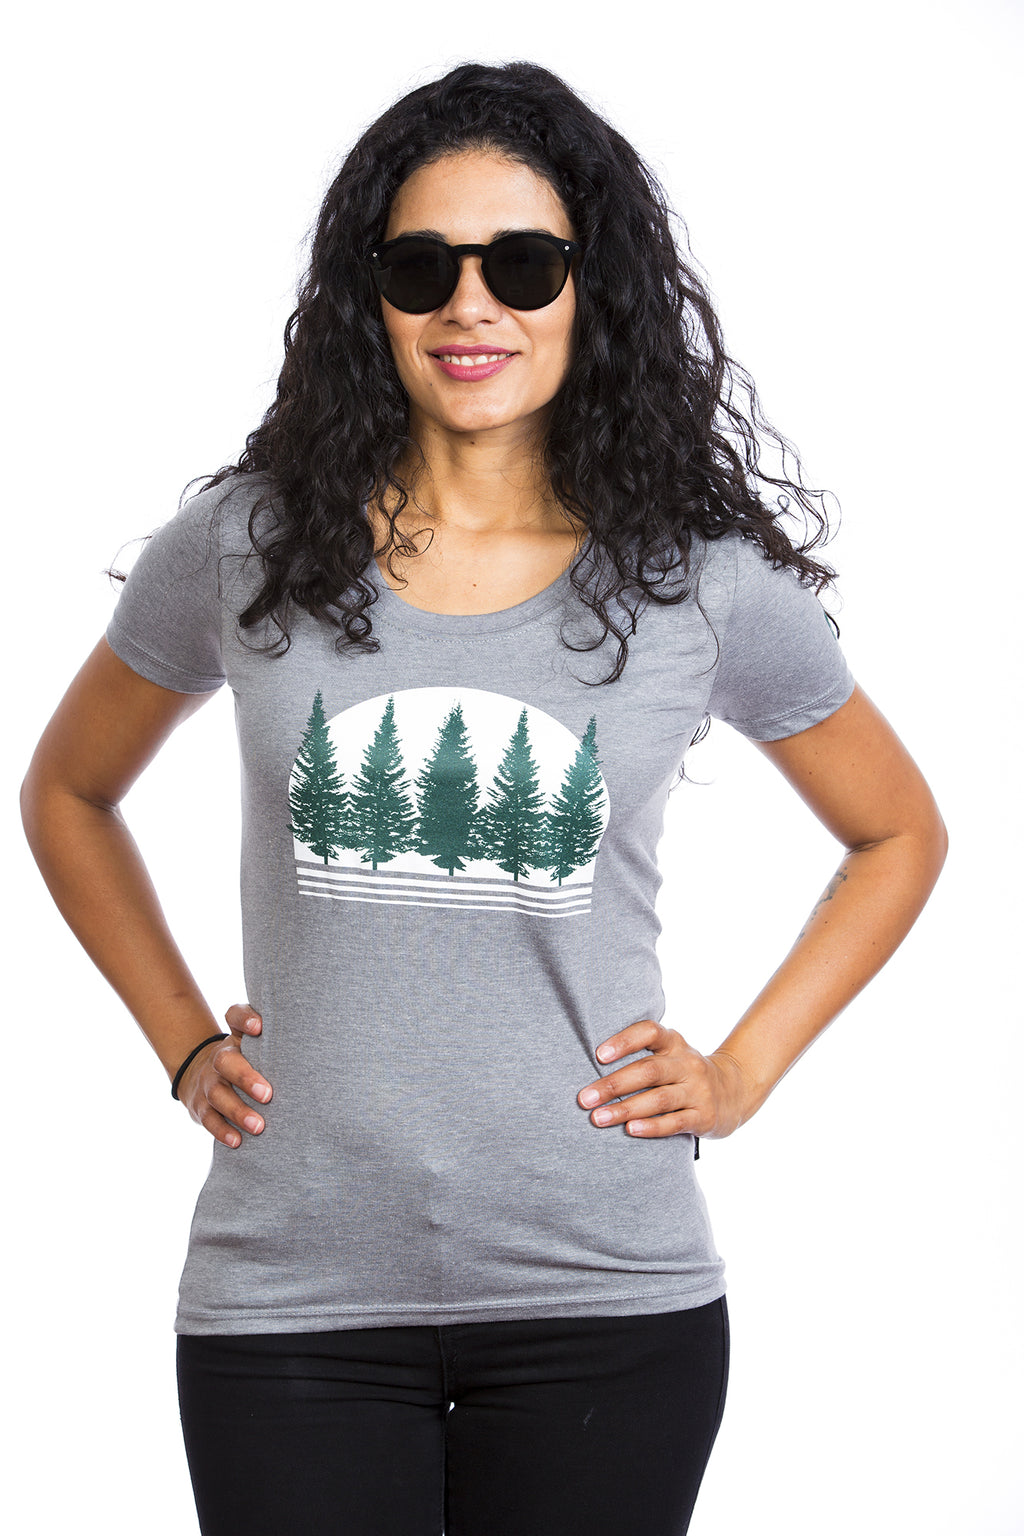 Boreal Forest T-shirt for Women - Cotton